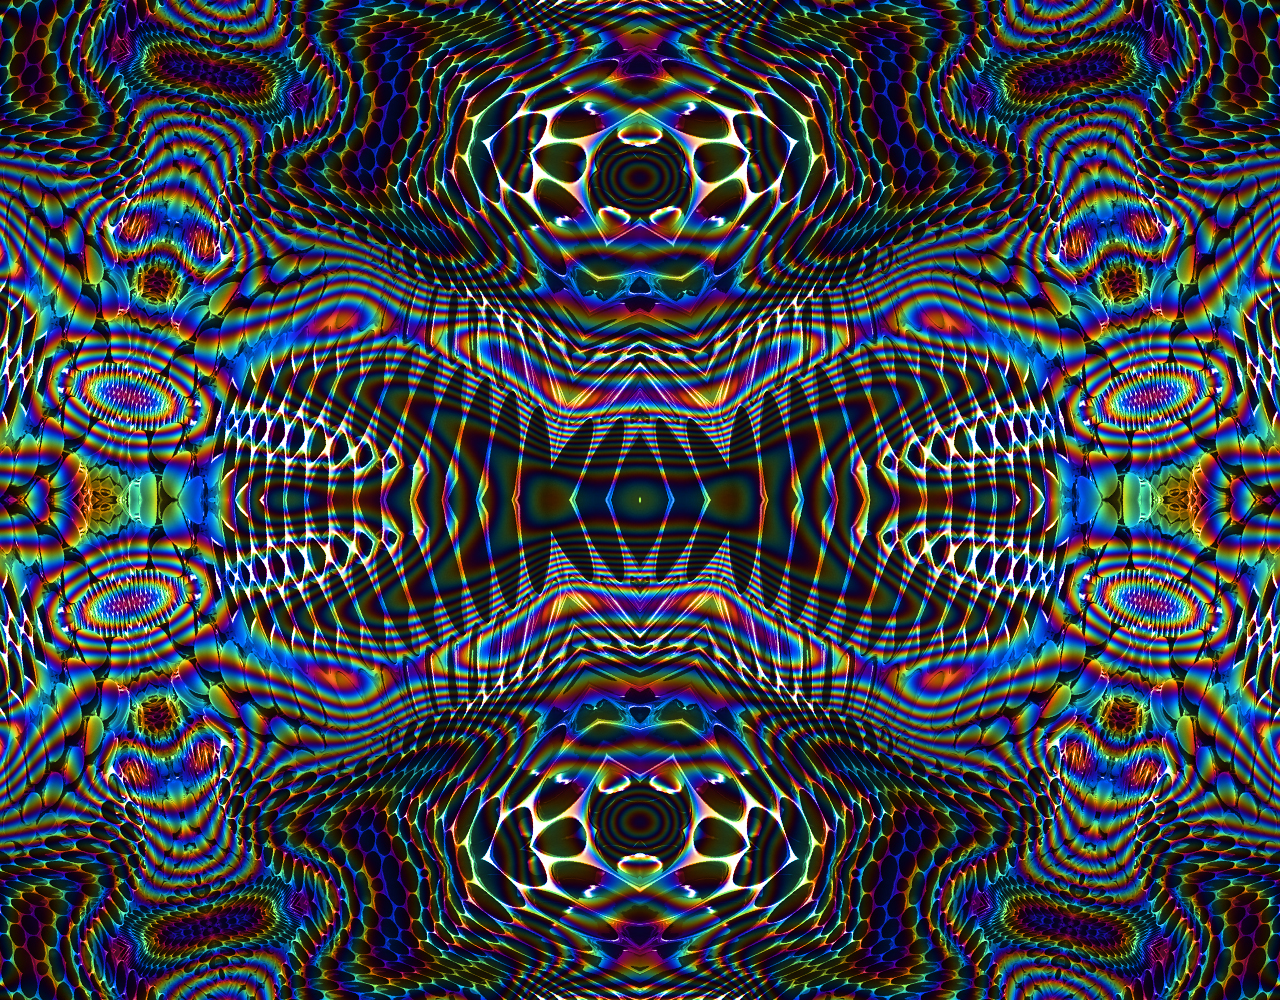 Psychedelic Wallpaper tumblr   HD Wallpapers 1280x1000